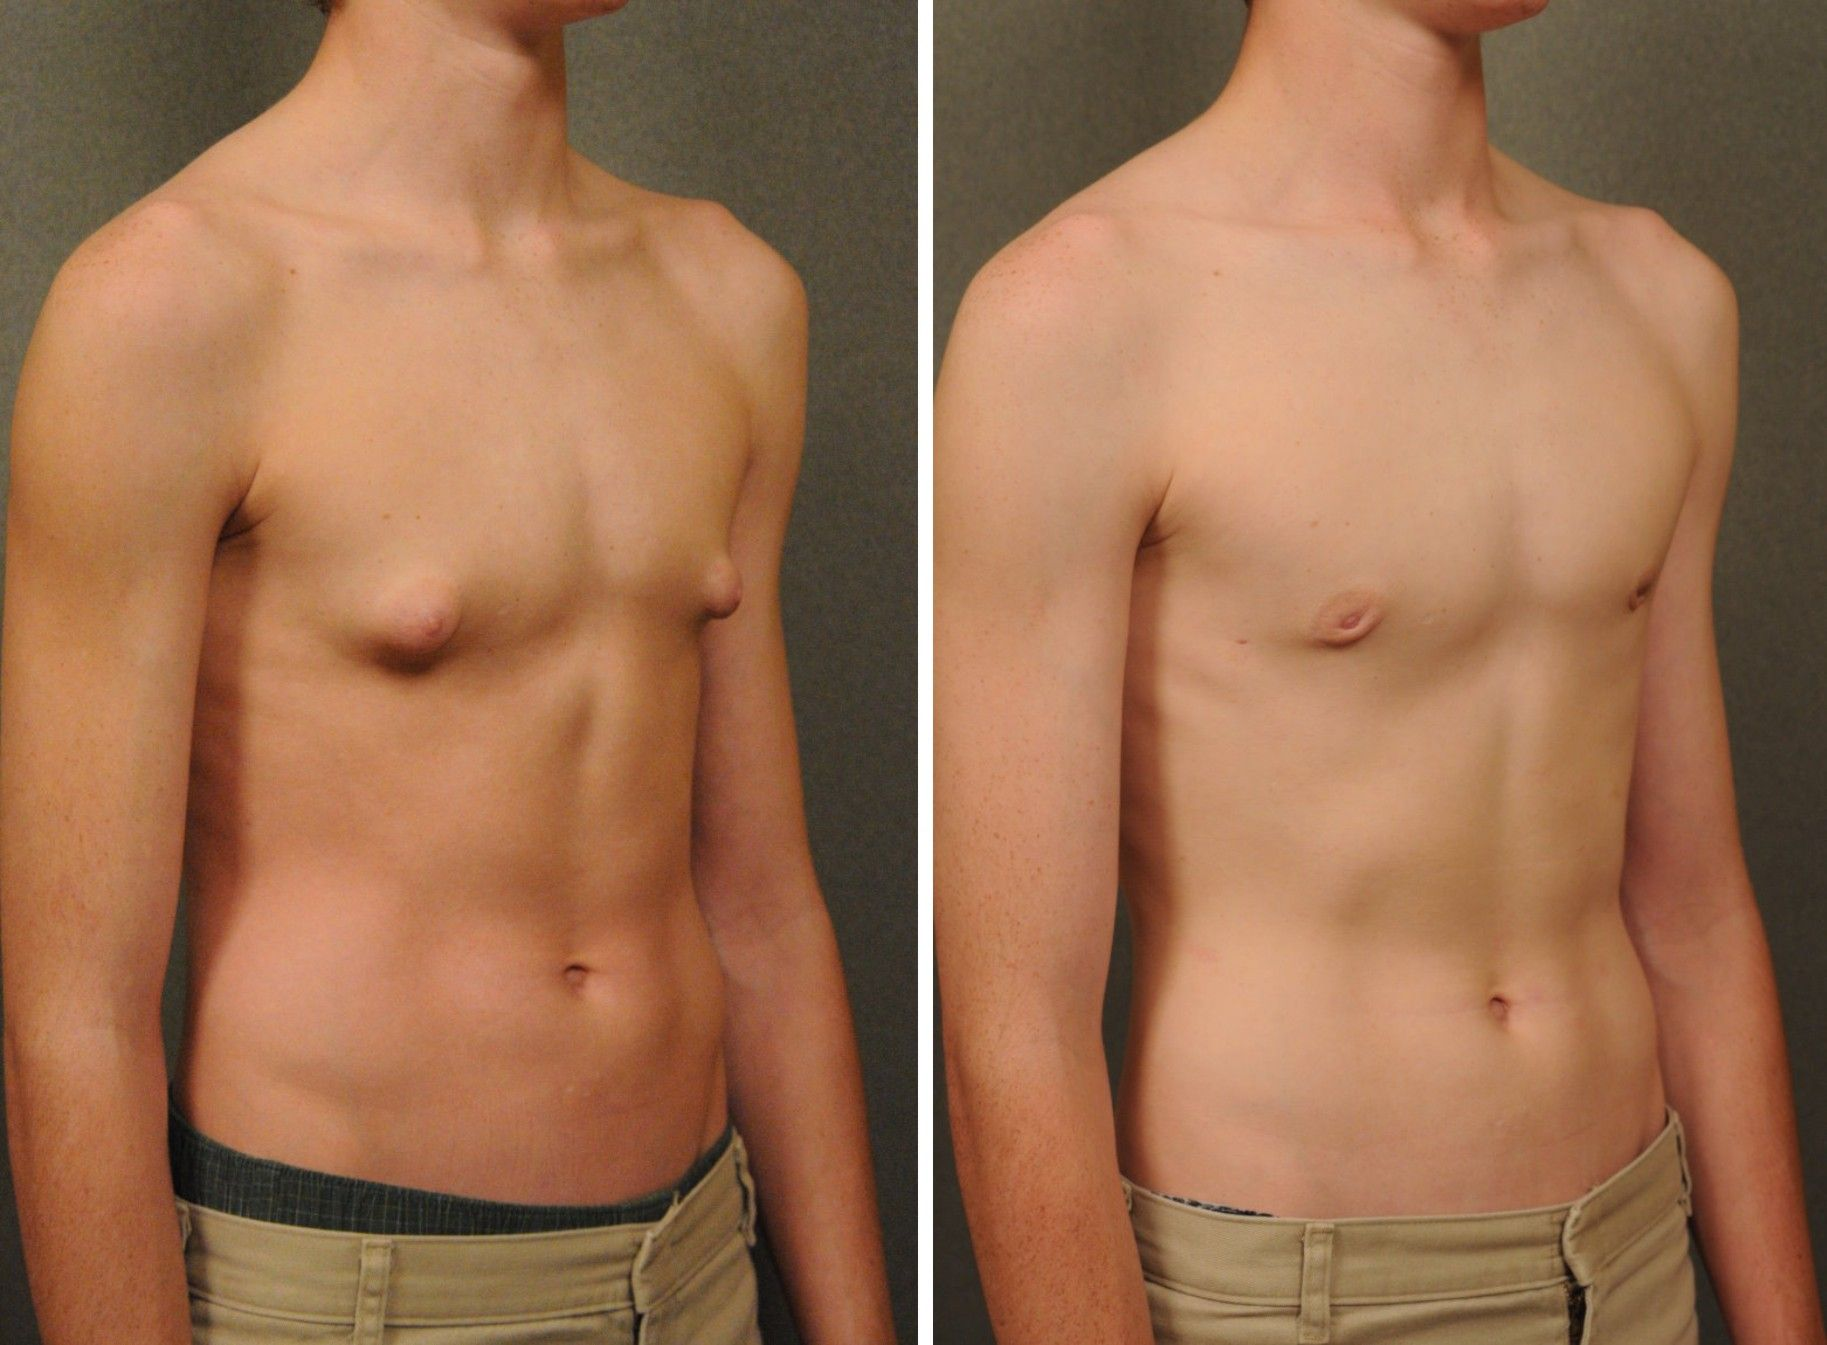 Male Breast Reduction For Gynecomastia Changes Male